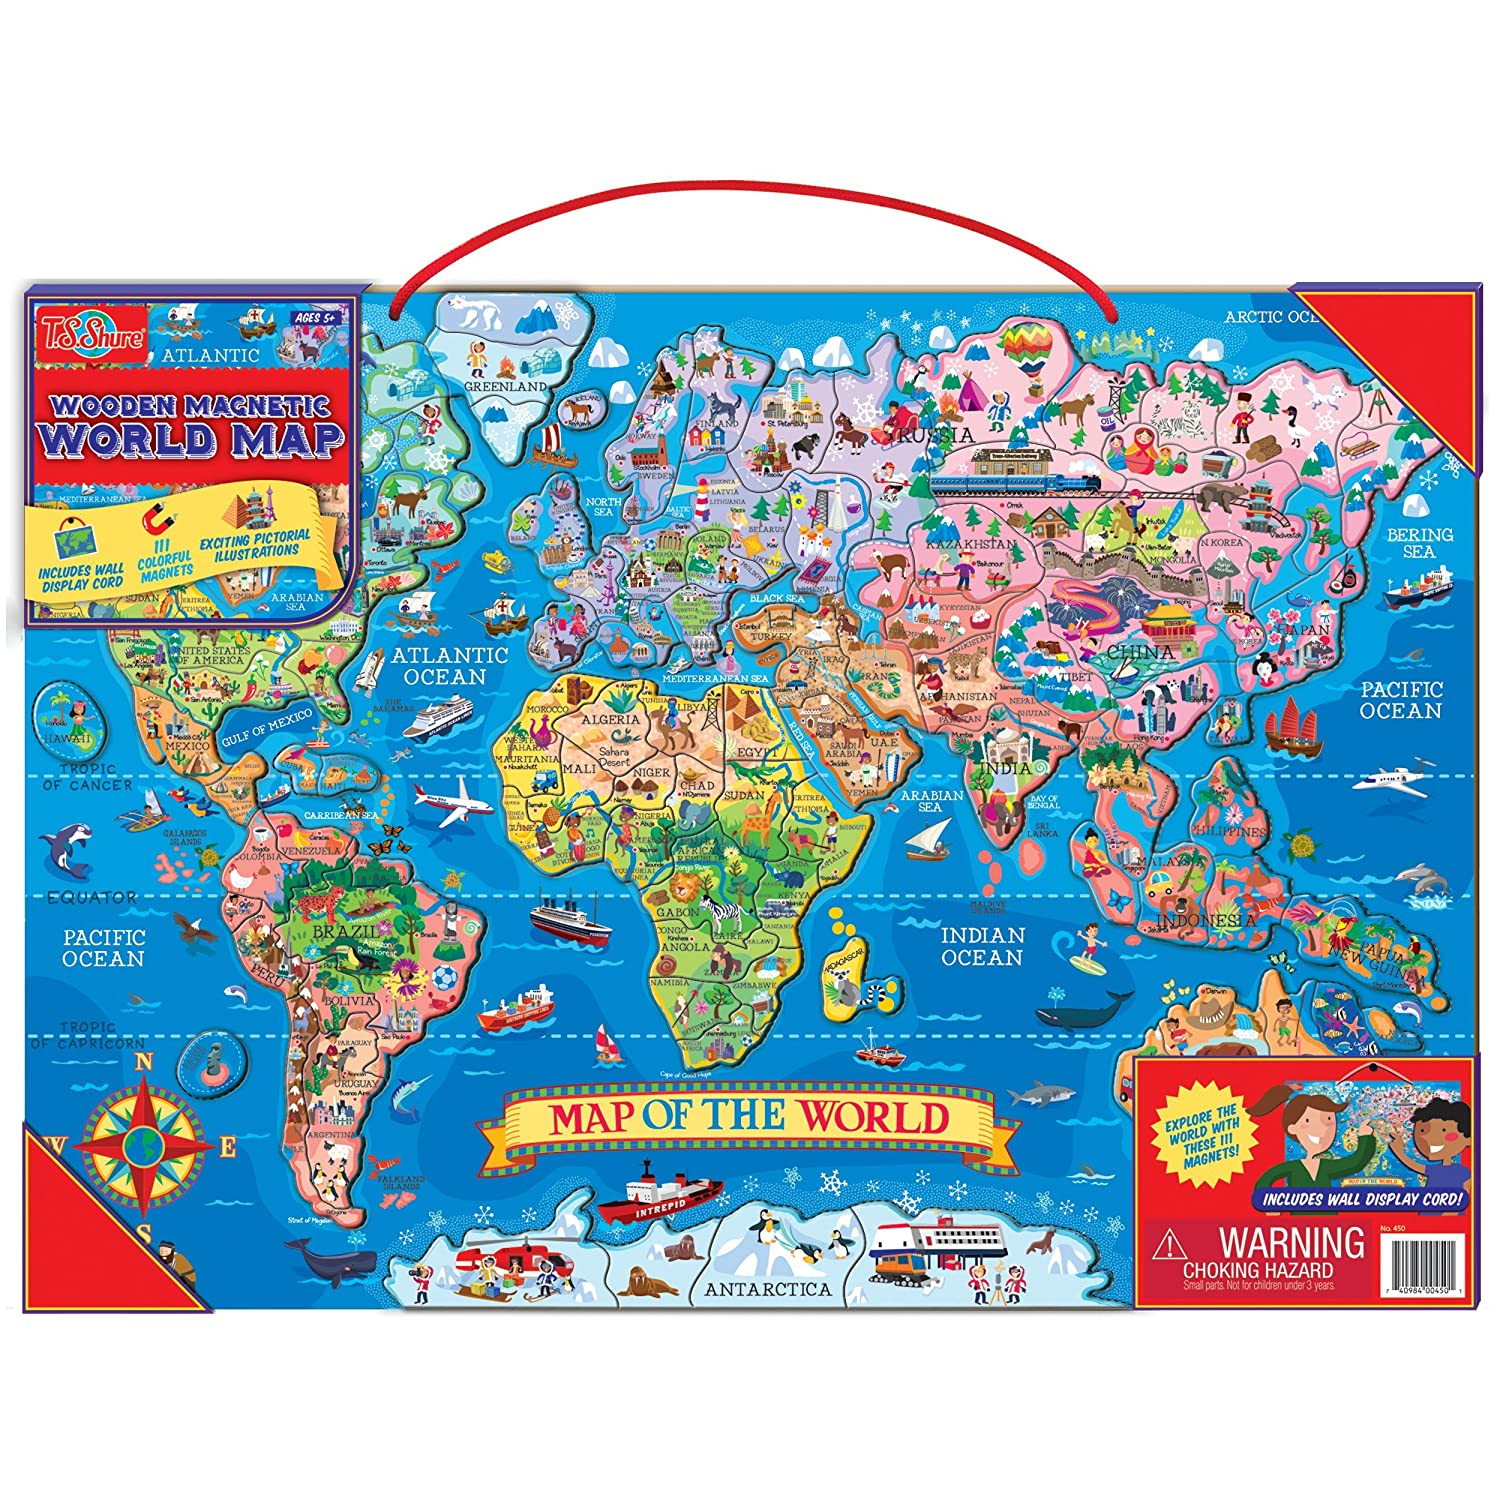 Buy ts shure wooden magnetic world map puzzle online at low prices buy ts shure wooden magnetic world map puzzle online at low prices in india amazon gumiabroncs